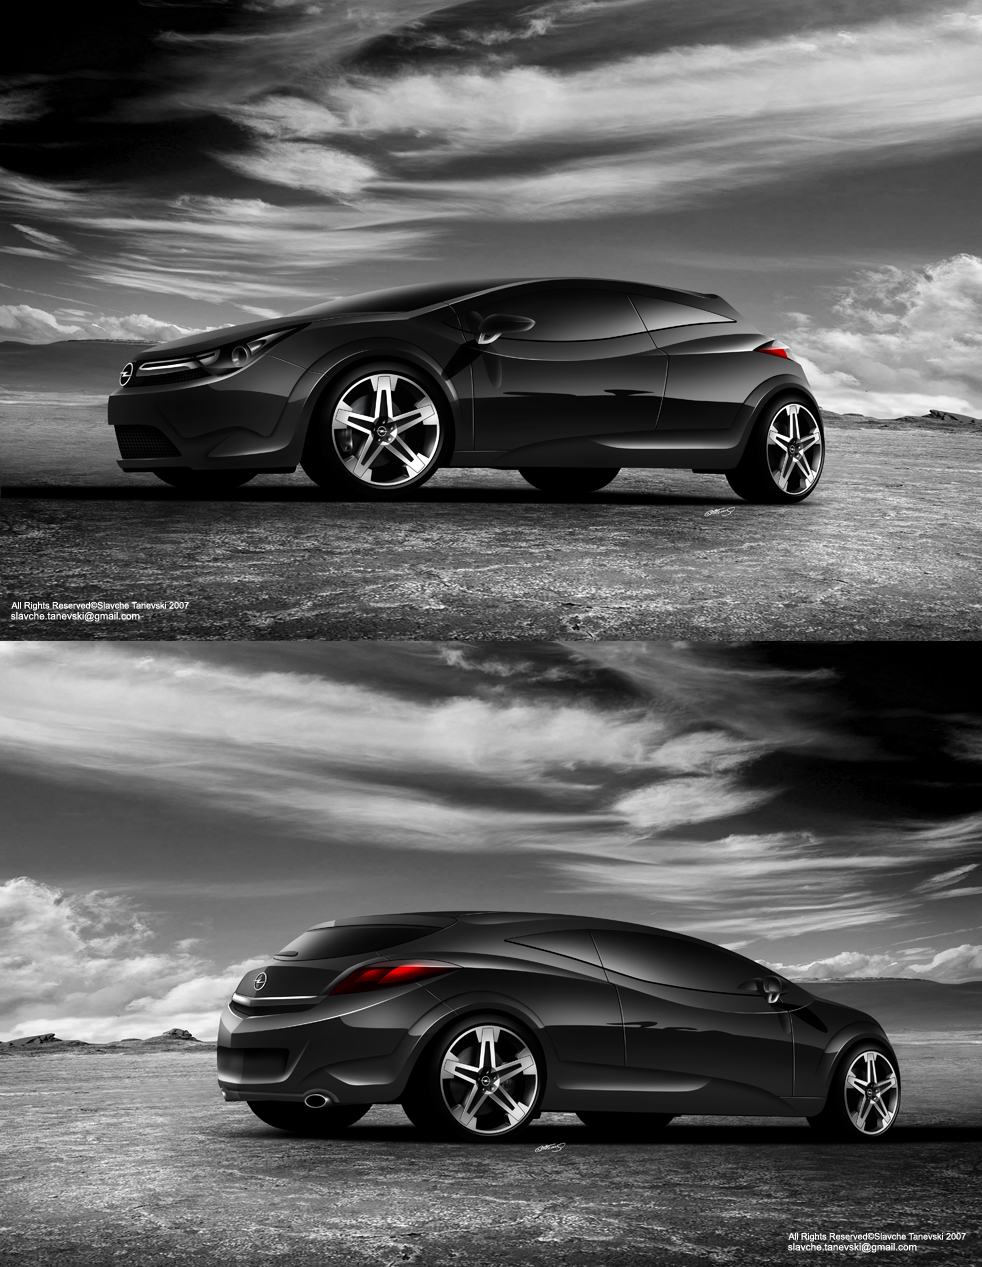 opel astra gtc by slavche on deviantart. Black Bedroom Furniture Sets. Home Design Ideas